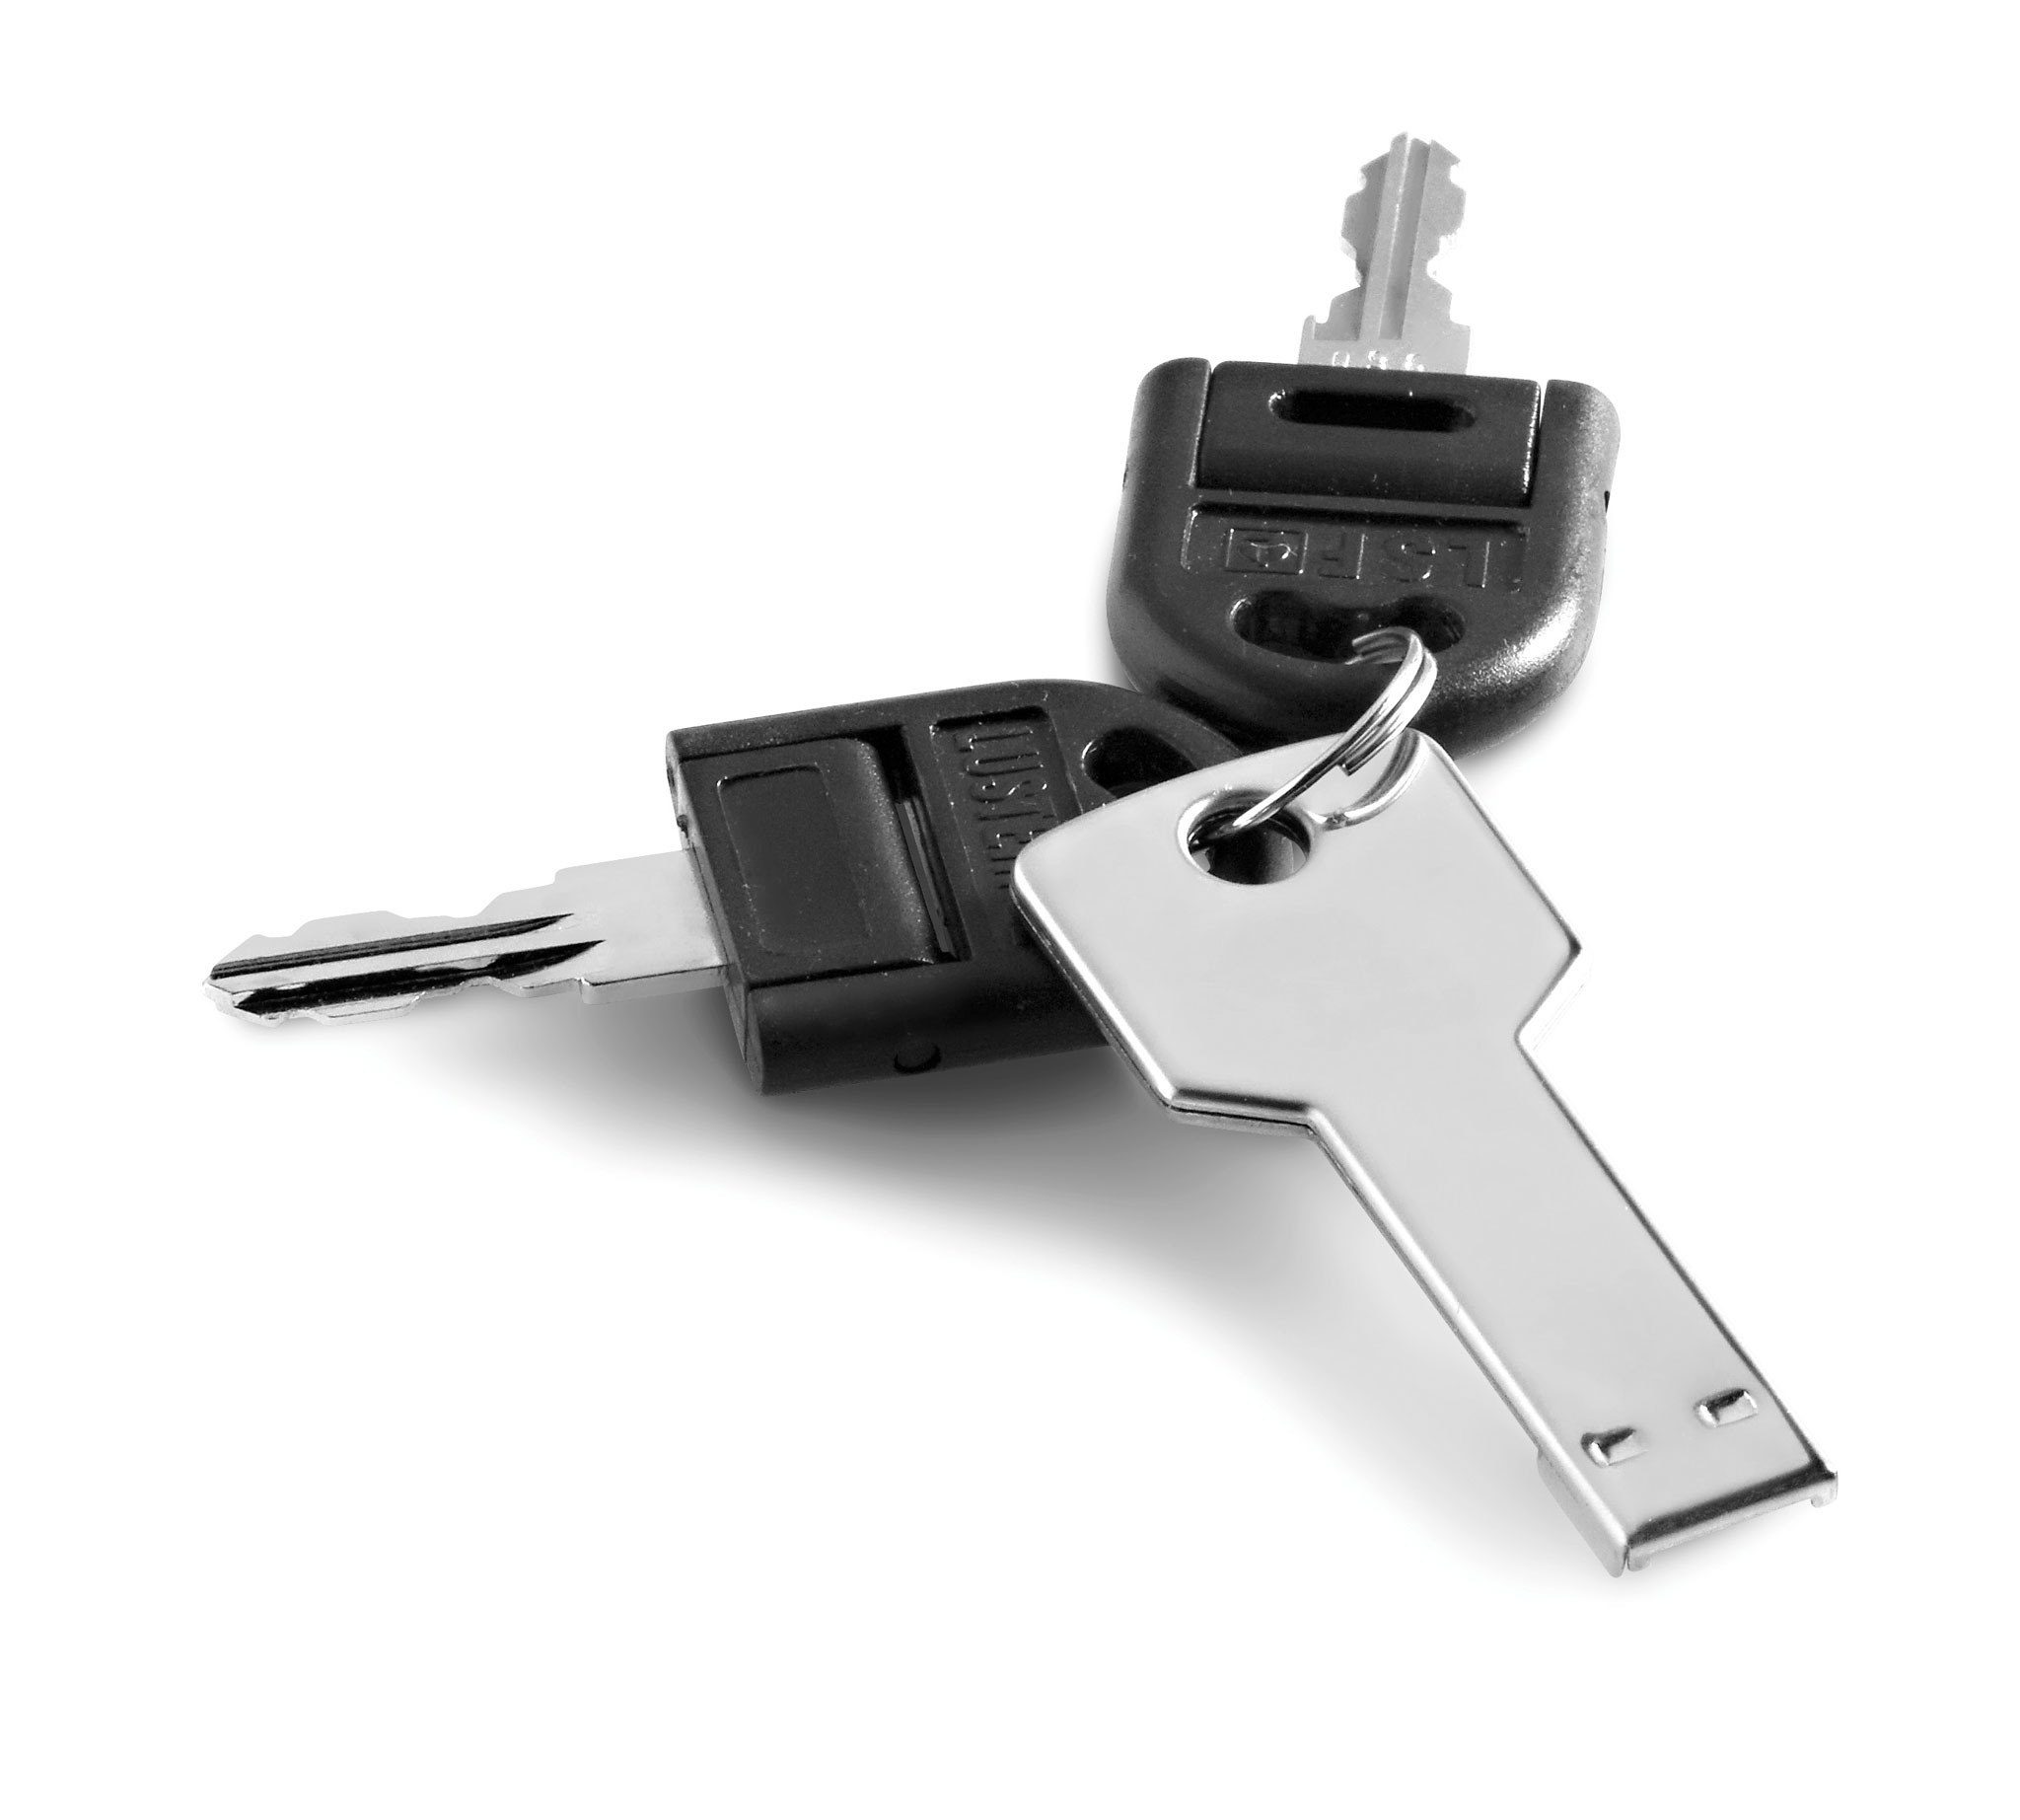 Flash Drive Key